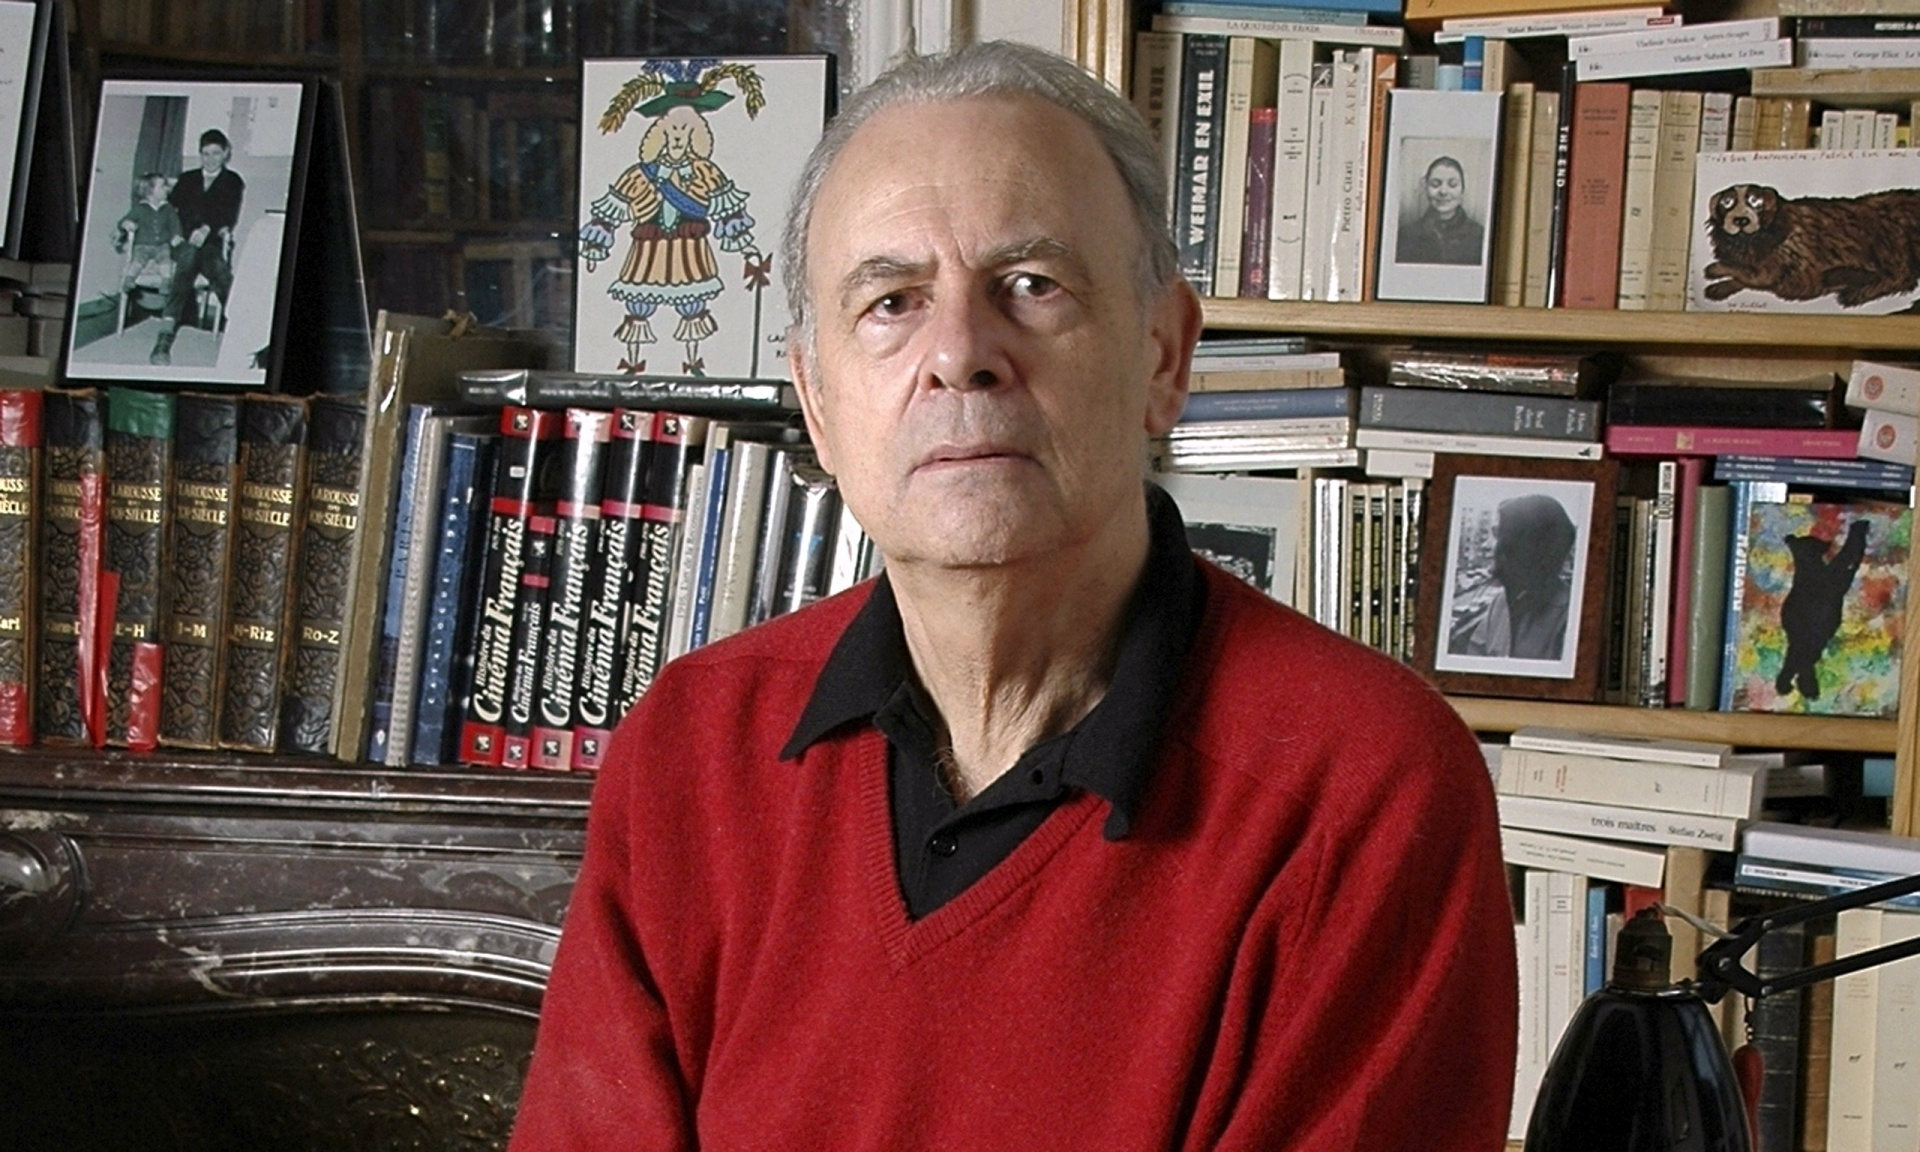 Photo of Patrick Modiano, winner of the 2014 Nobel prize in literature. [Source: Guardian/AP] http://www.theguardian.com/books/2014/oct/10/patrick-modiano-nobel-prize-literature